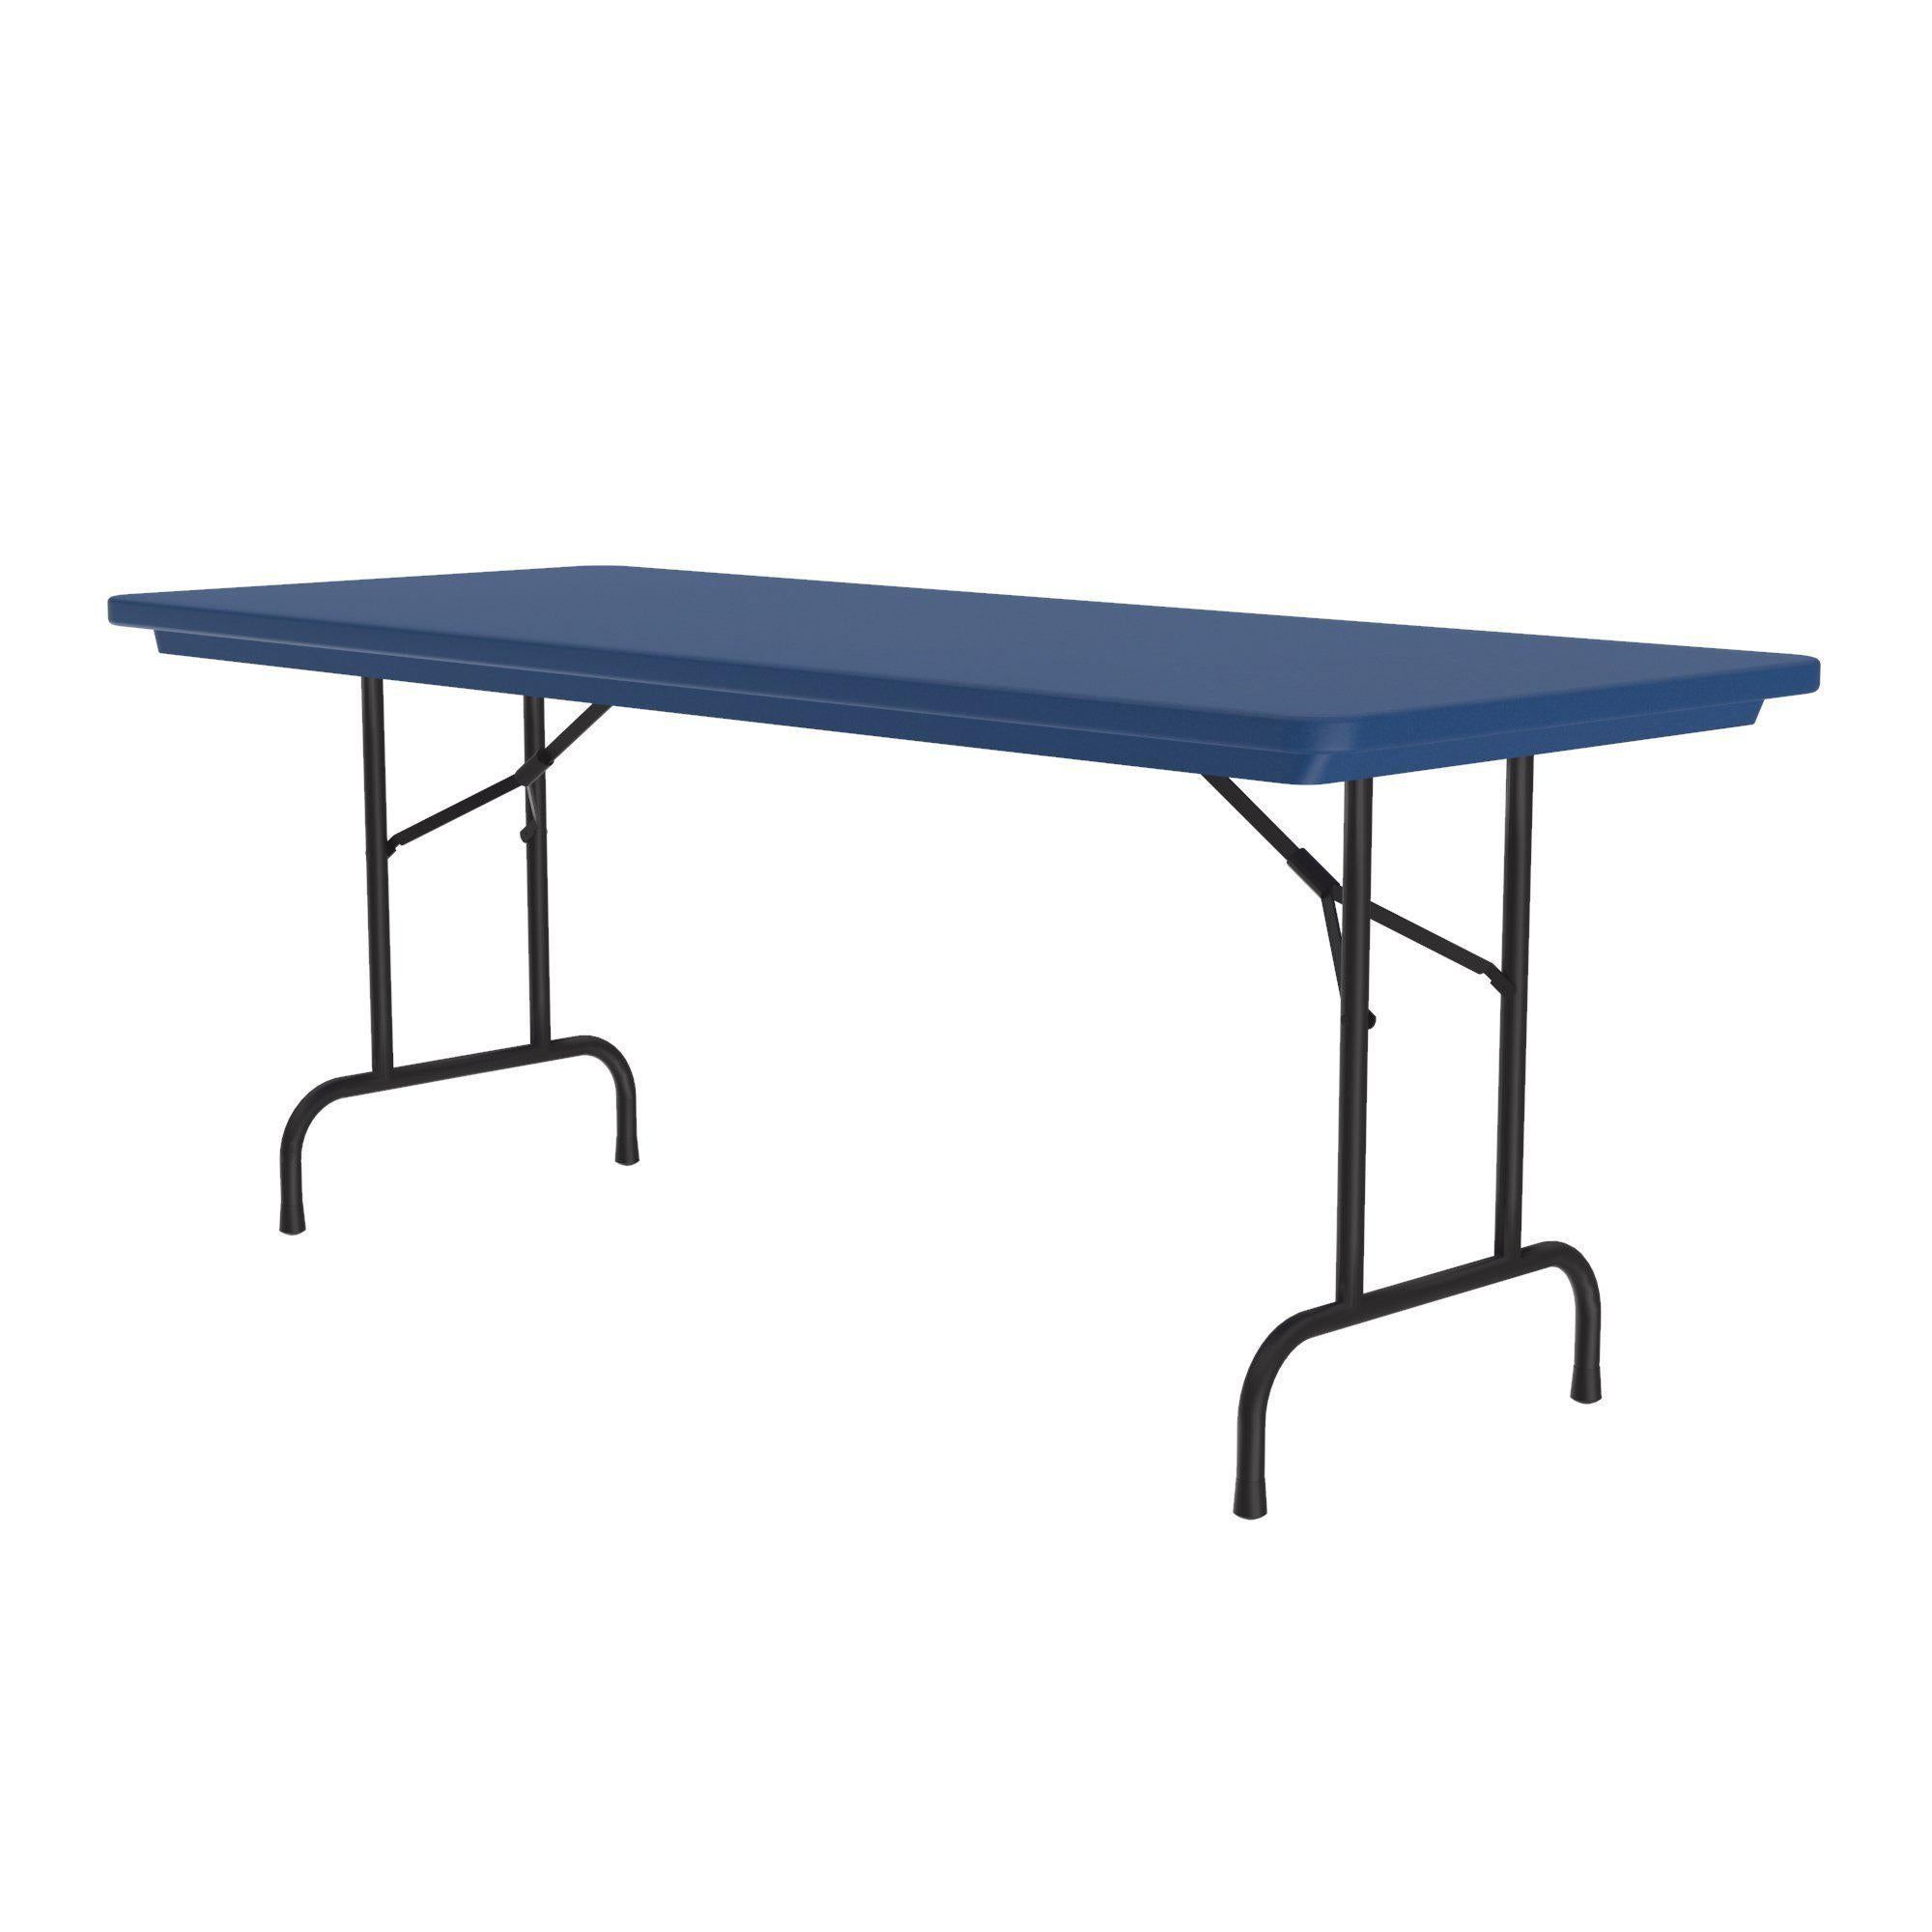 "Heavy Duty Commercial Use Blow Molded Folding Table, Primary Colors, Standard 29"" Fixed Height, 30 x 60"